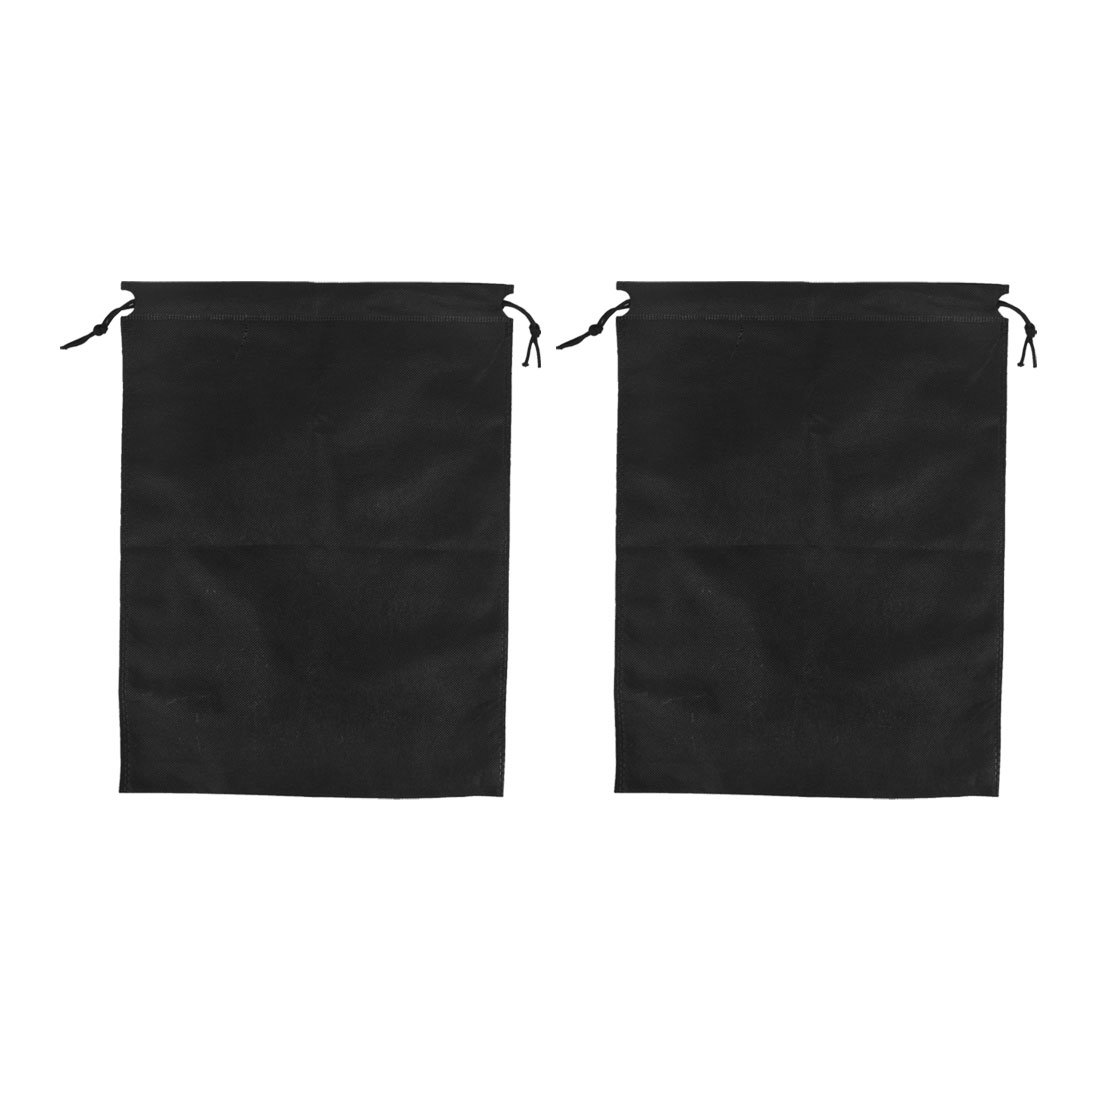 Traveling Clothes Dust Cover Storage Drawstring Bags 40 x 30cm Black 2pcs